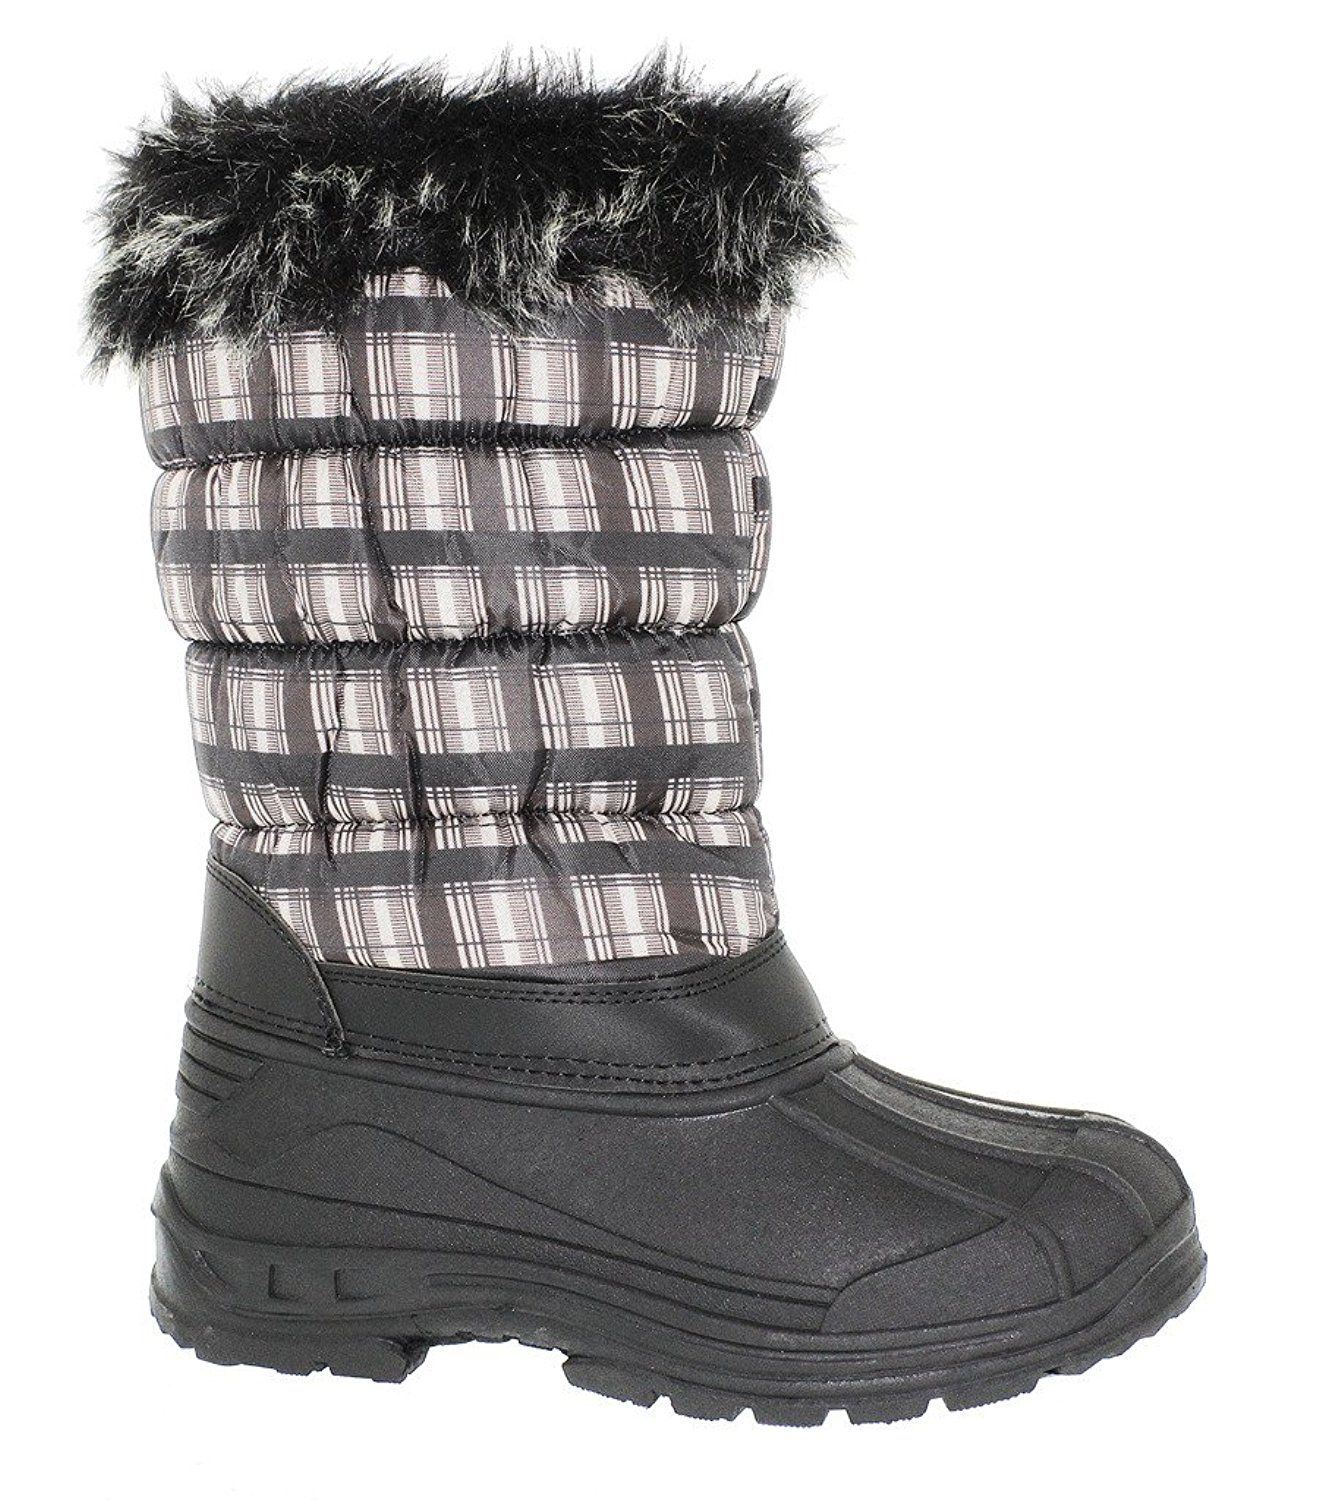 Ladies Plaid Print Snow Boot with Side Zipper and Fur Cuff *** Startling review available here  at Winter Shoes board